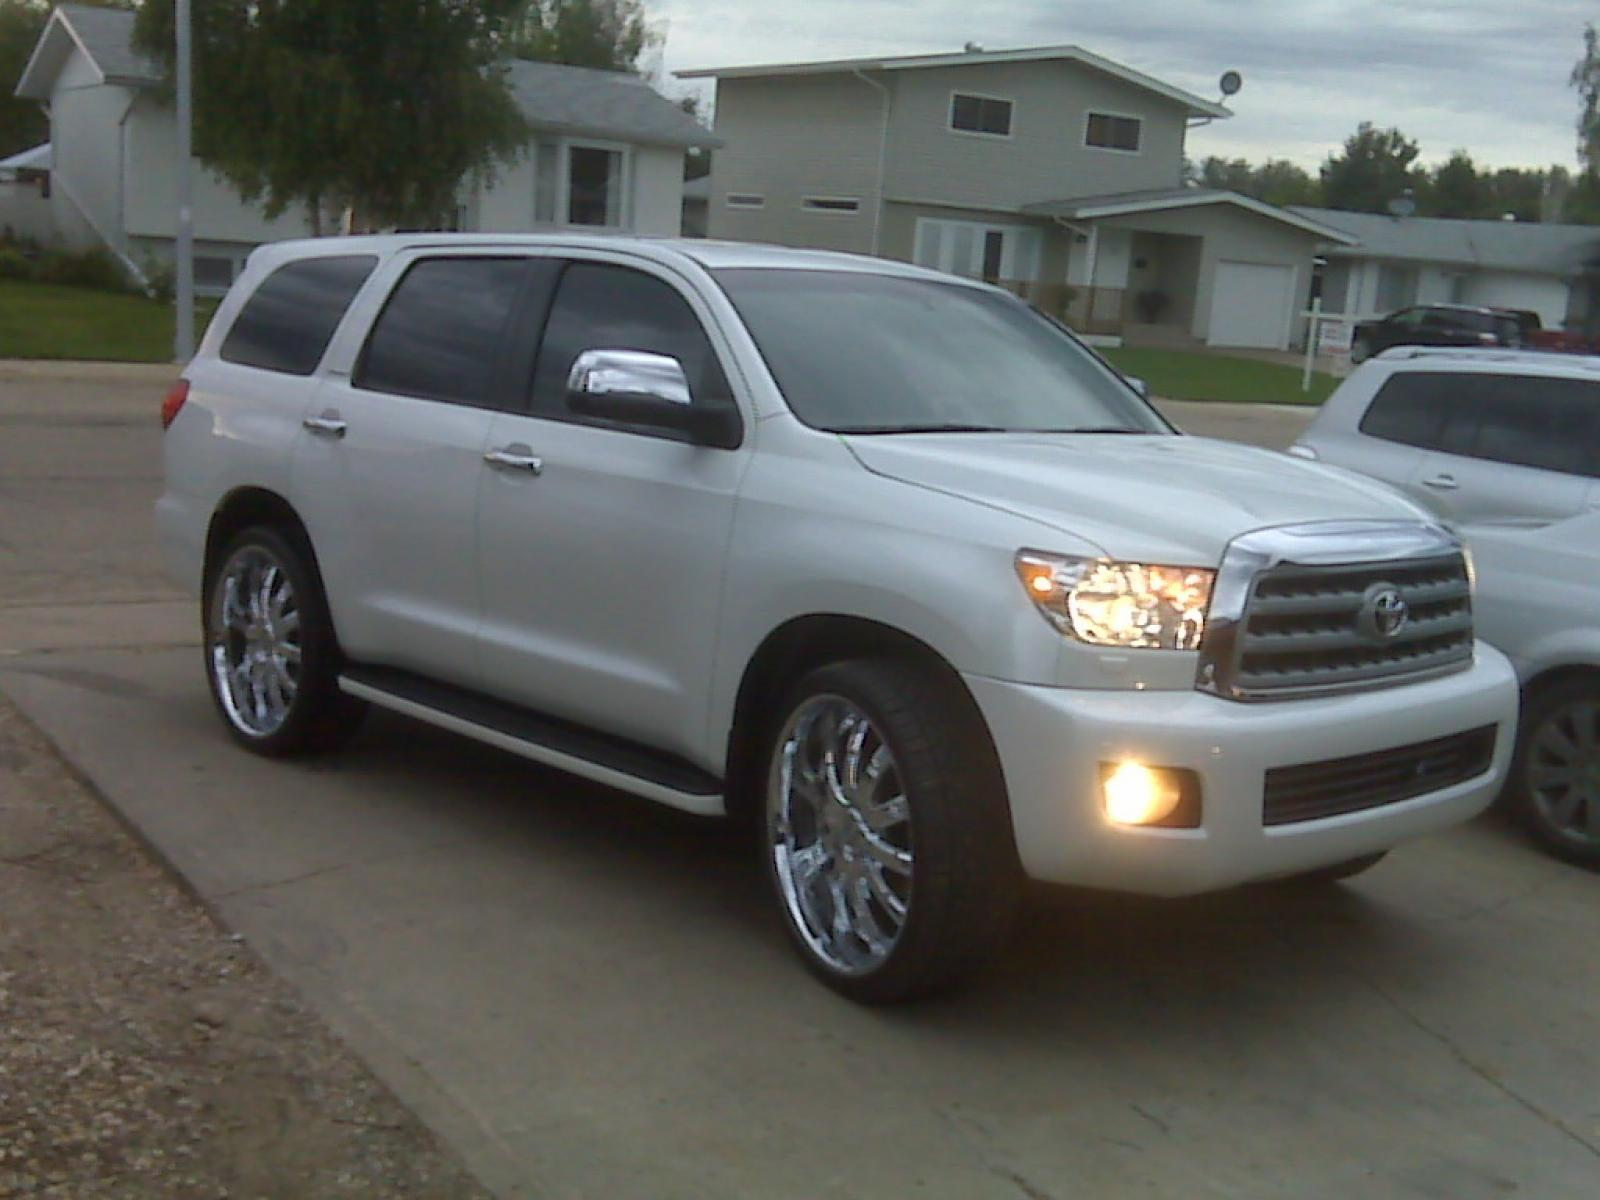 800 1024 1280 1600 origin 2008 Toyota Sequoia ...